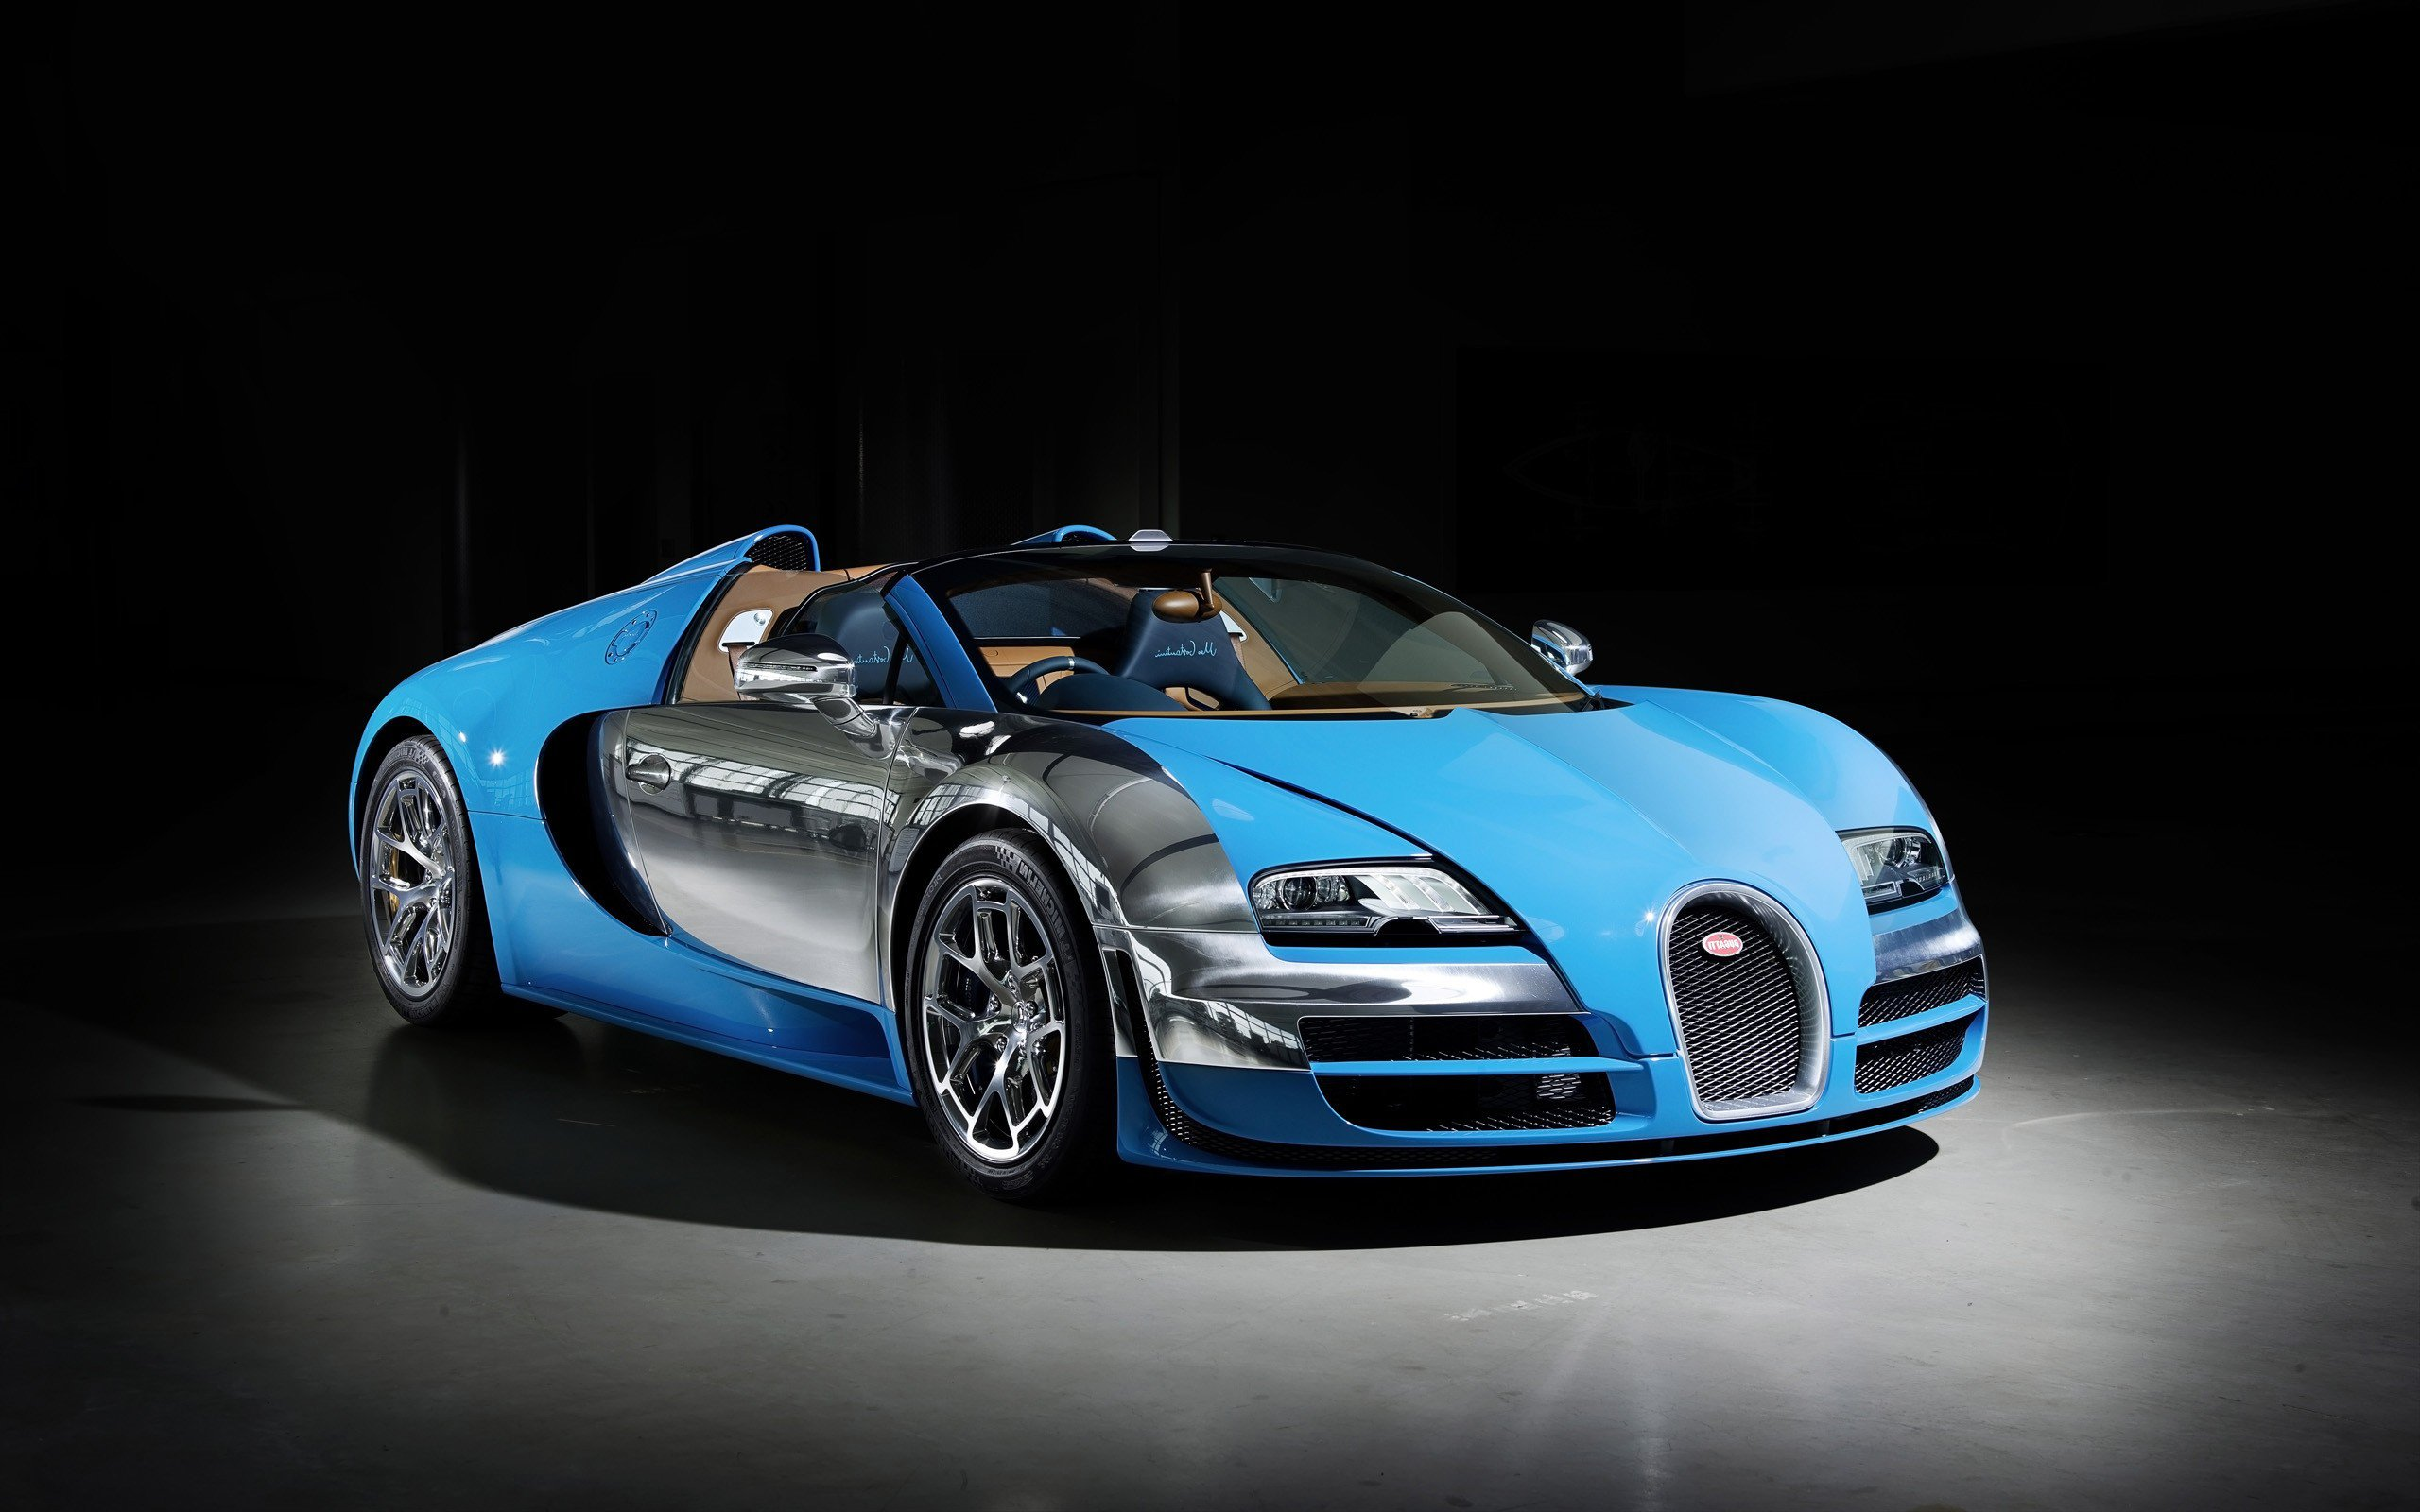 Bugatti Cars Wallpapers Hd: Bugatti Veyron Grand Sport Vitesse HD, HD Cars, 4k